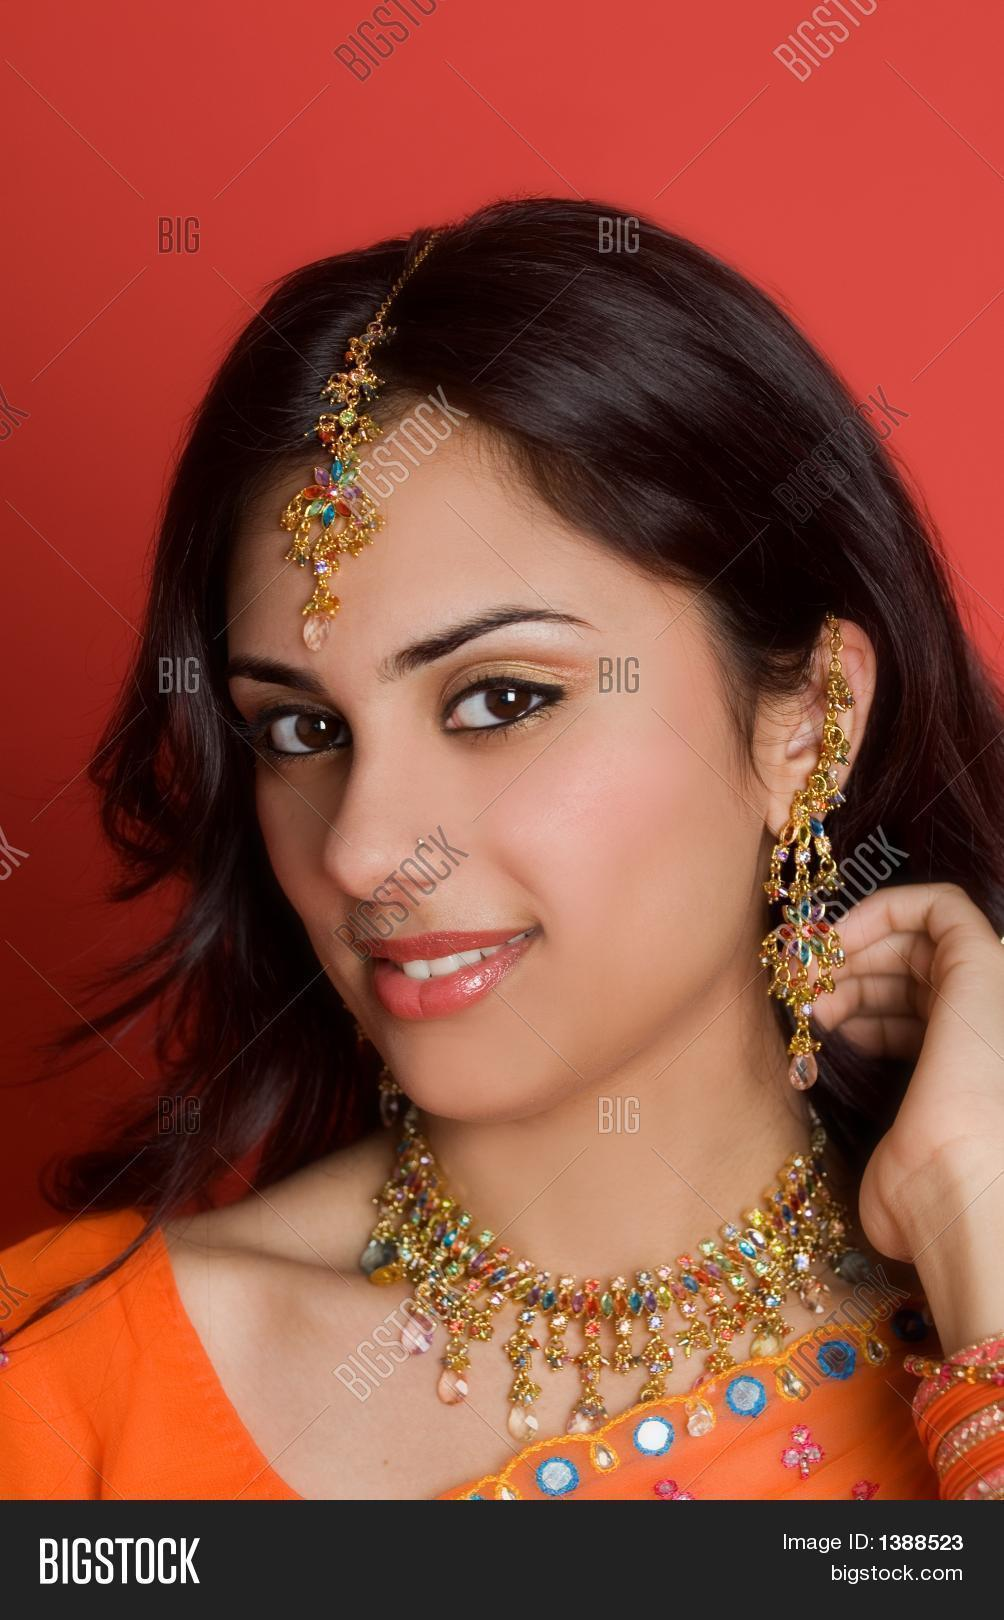 republic hindu single women Online personals with photos of single men and women seeking each other for dating, love, and marriage in india.